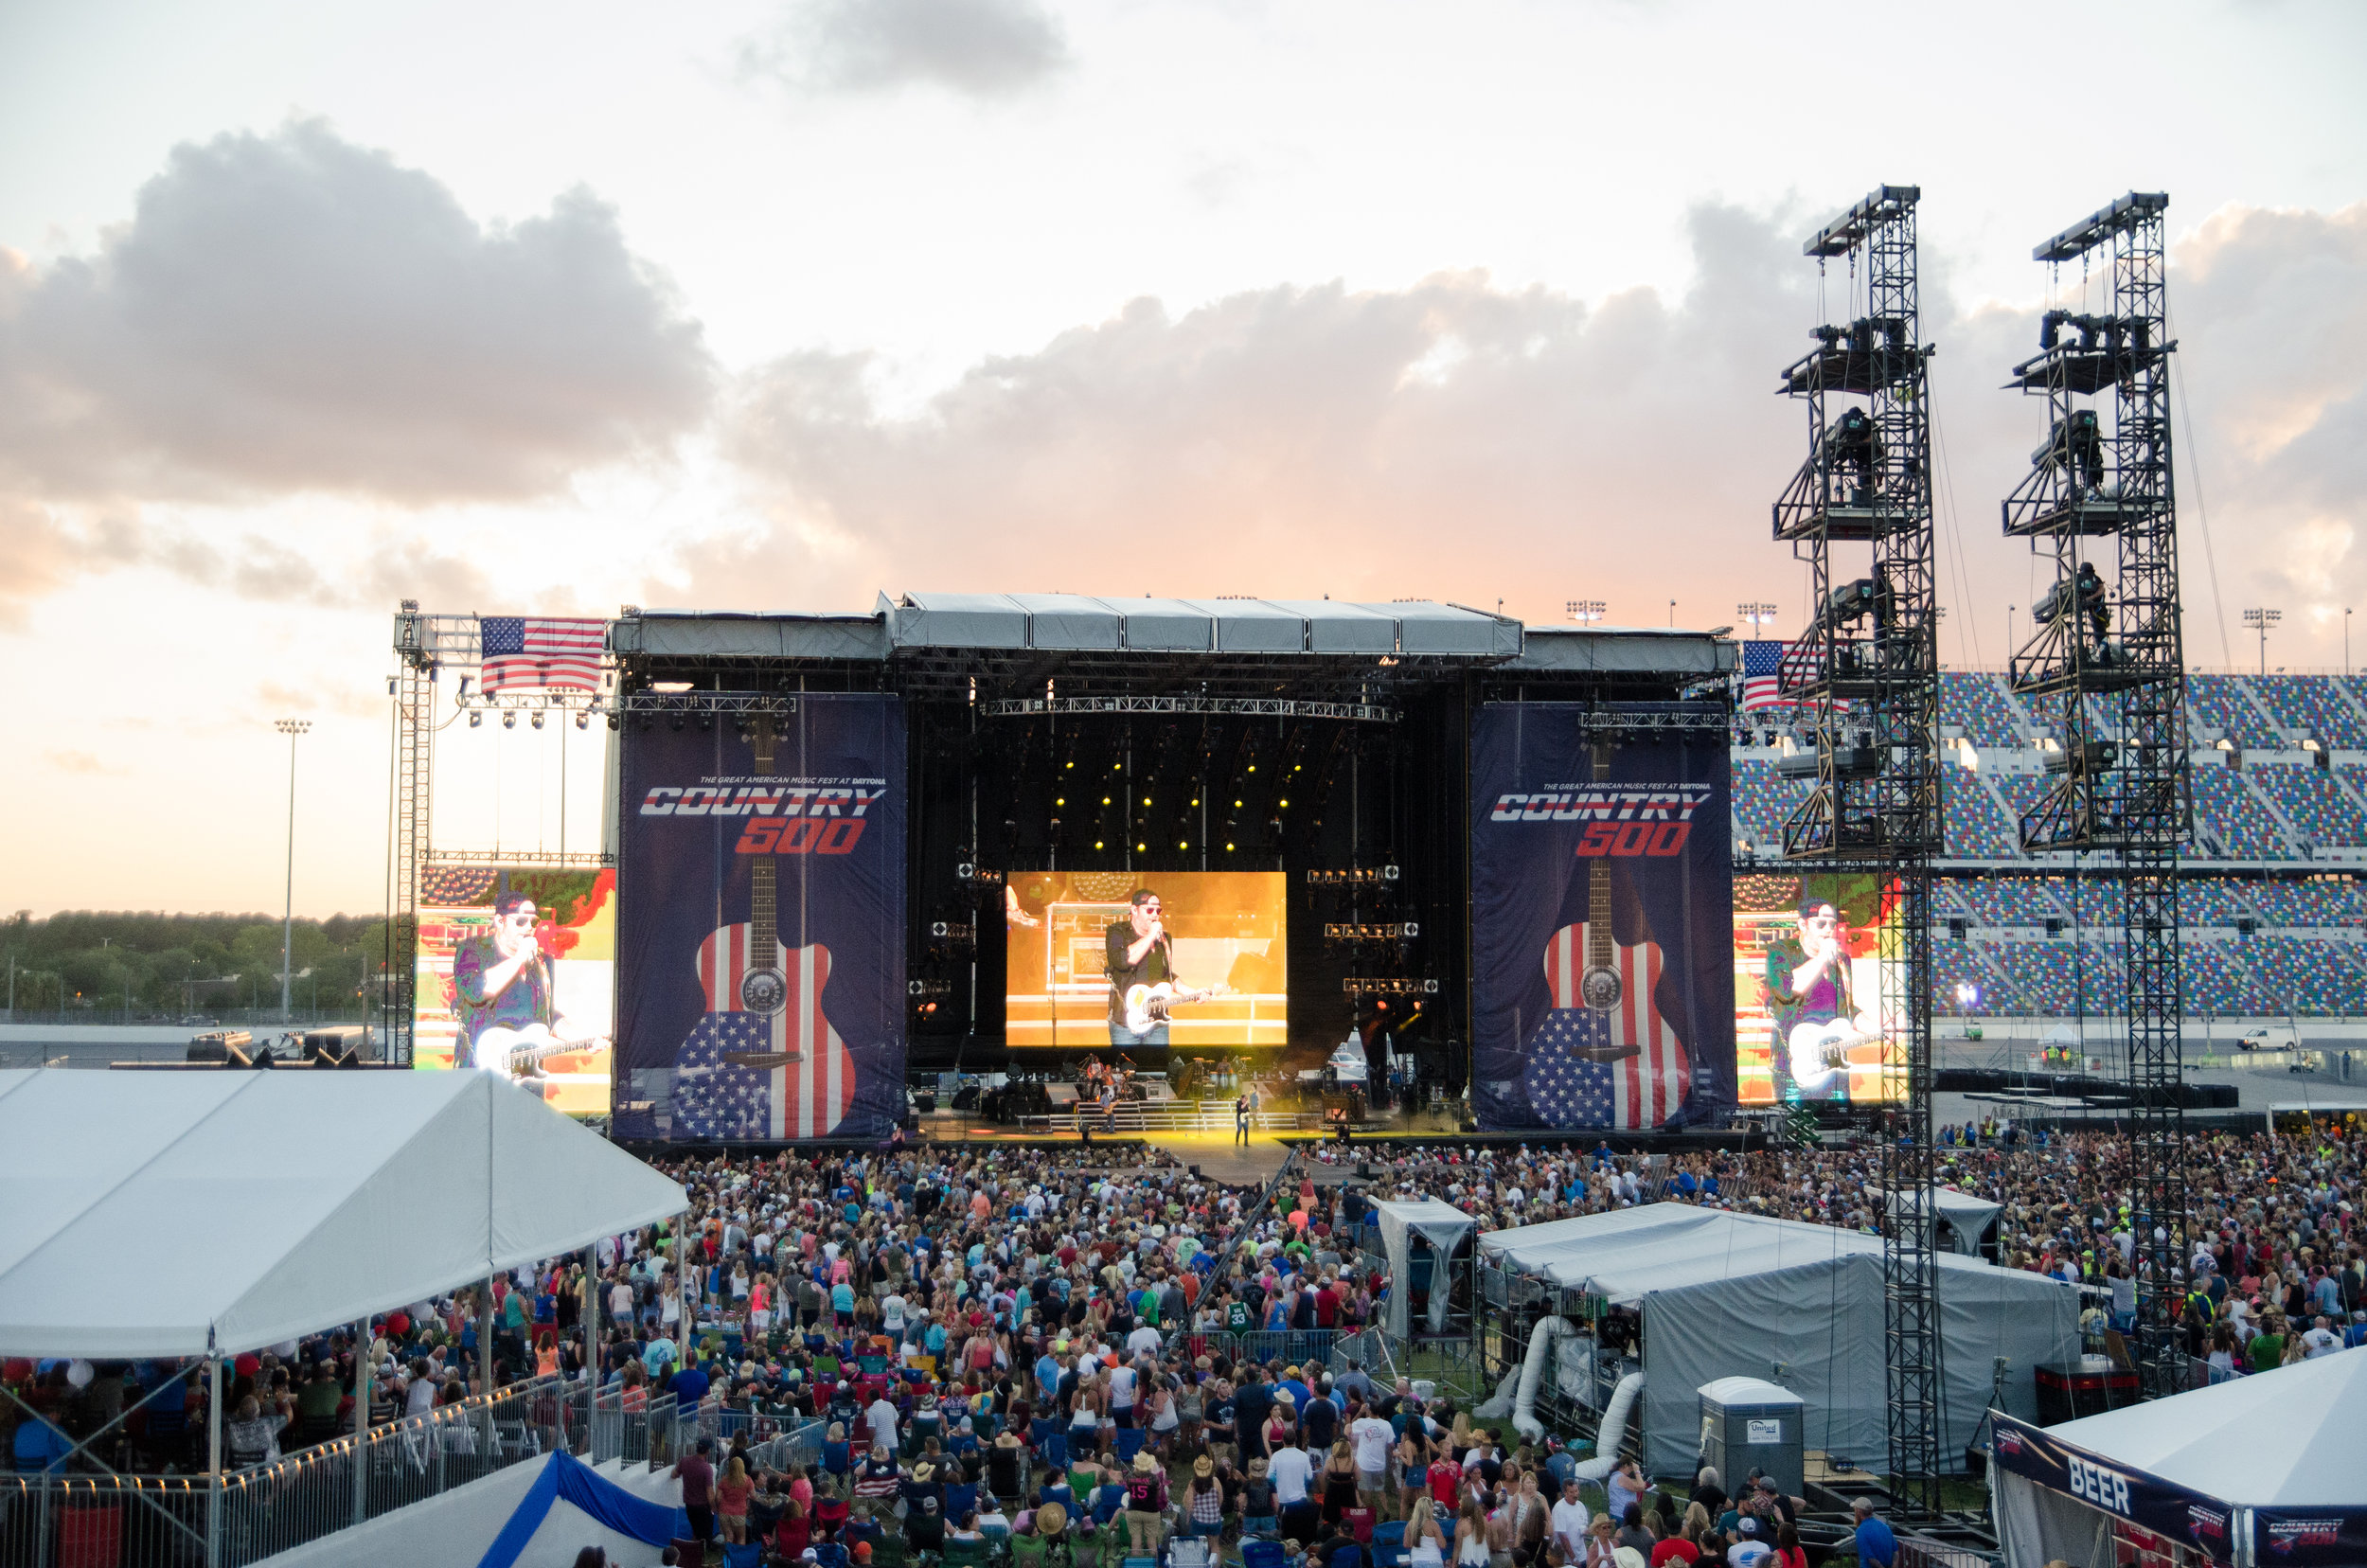 2016 Country500 Festival